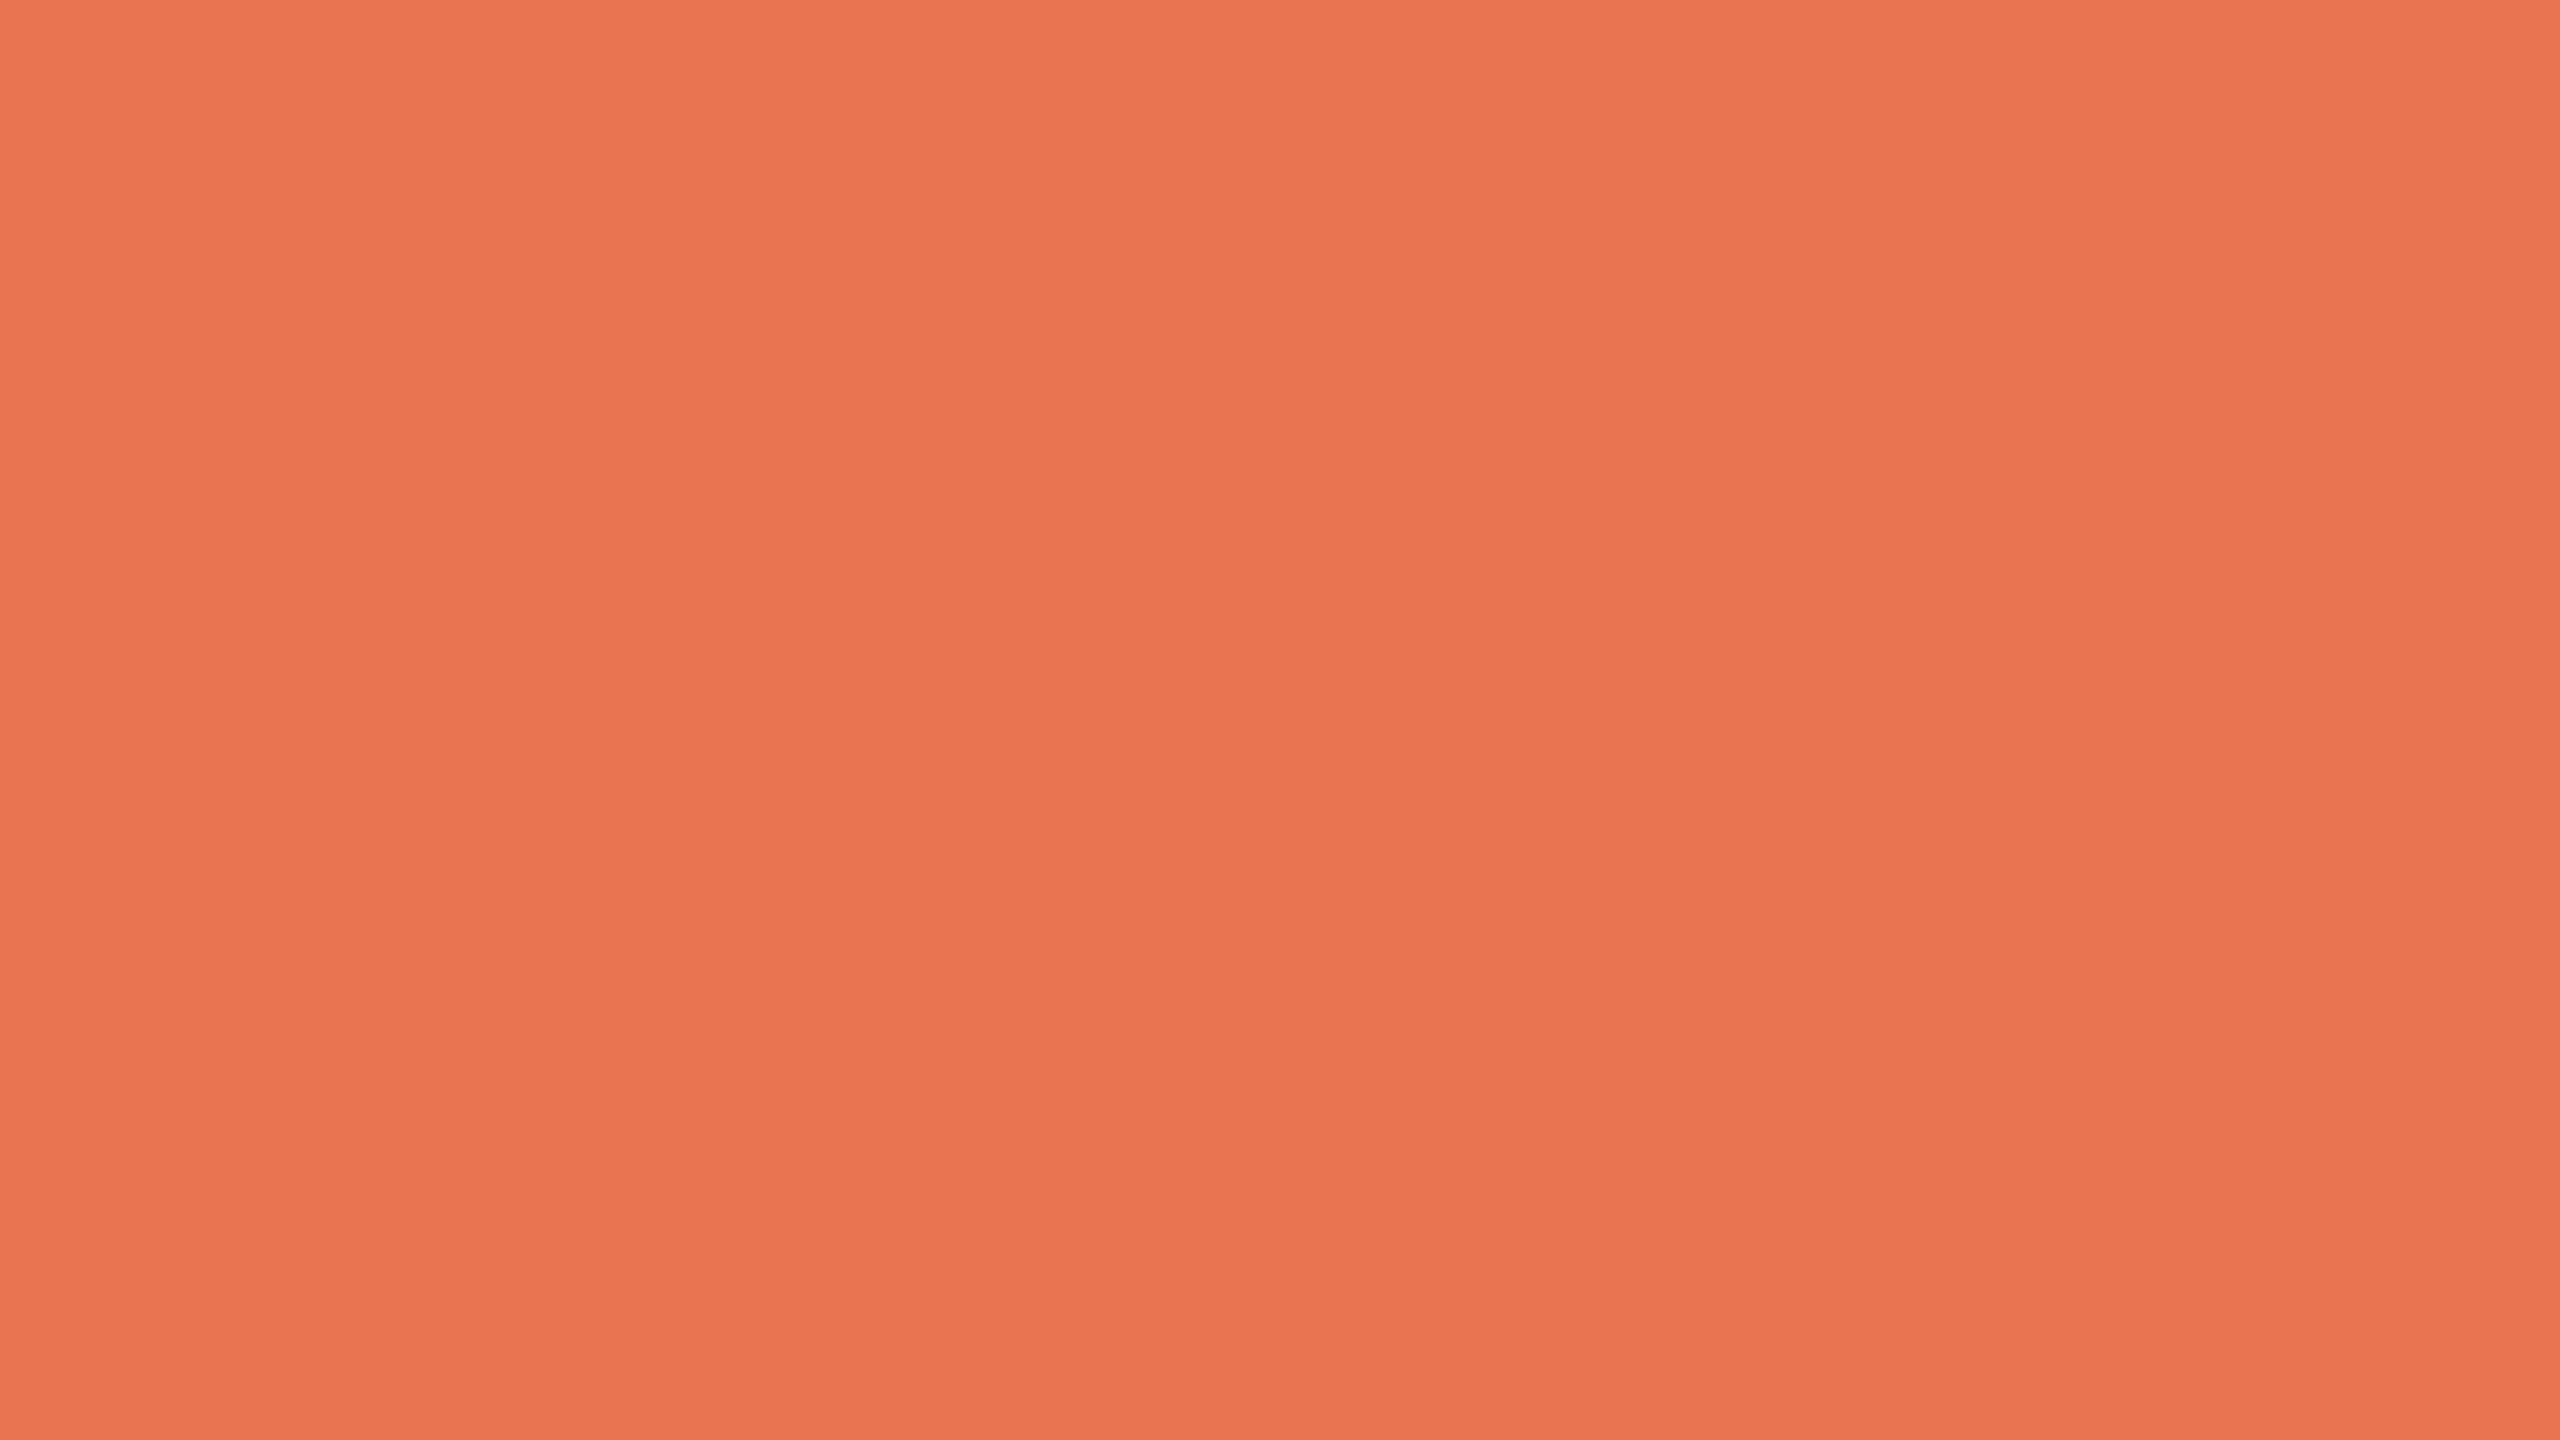 2560x1440 Light Red Ochre Solid Color Background